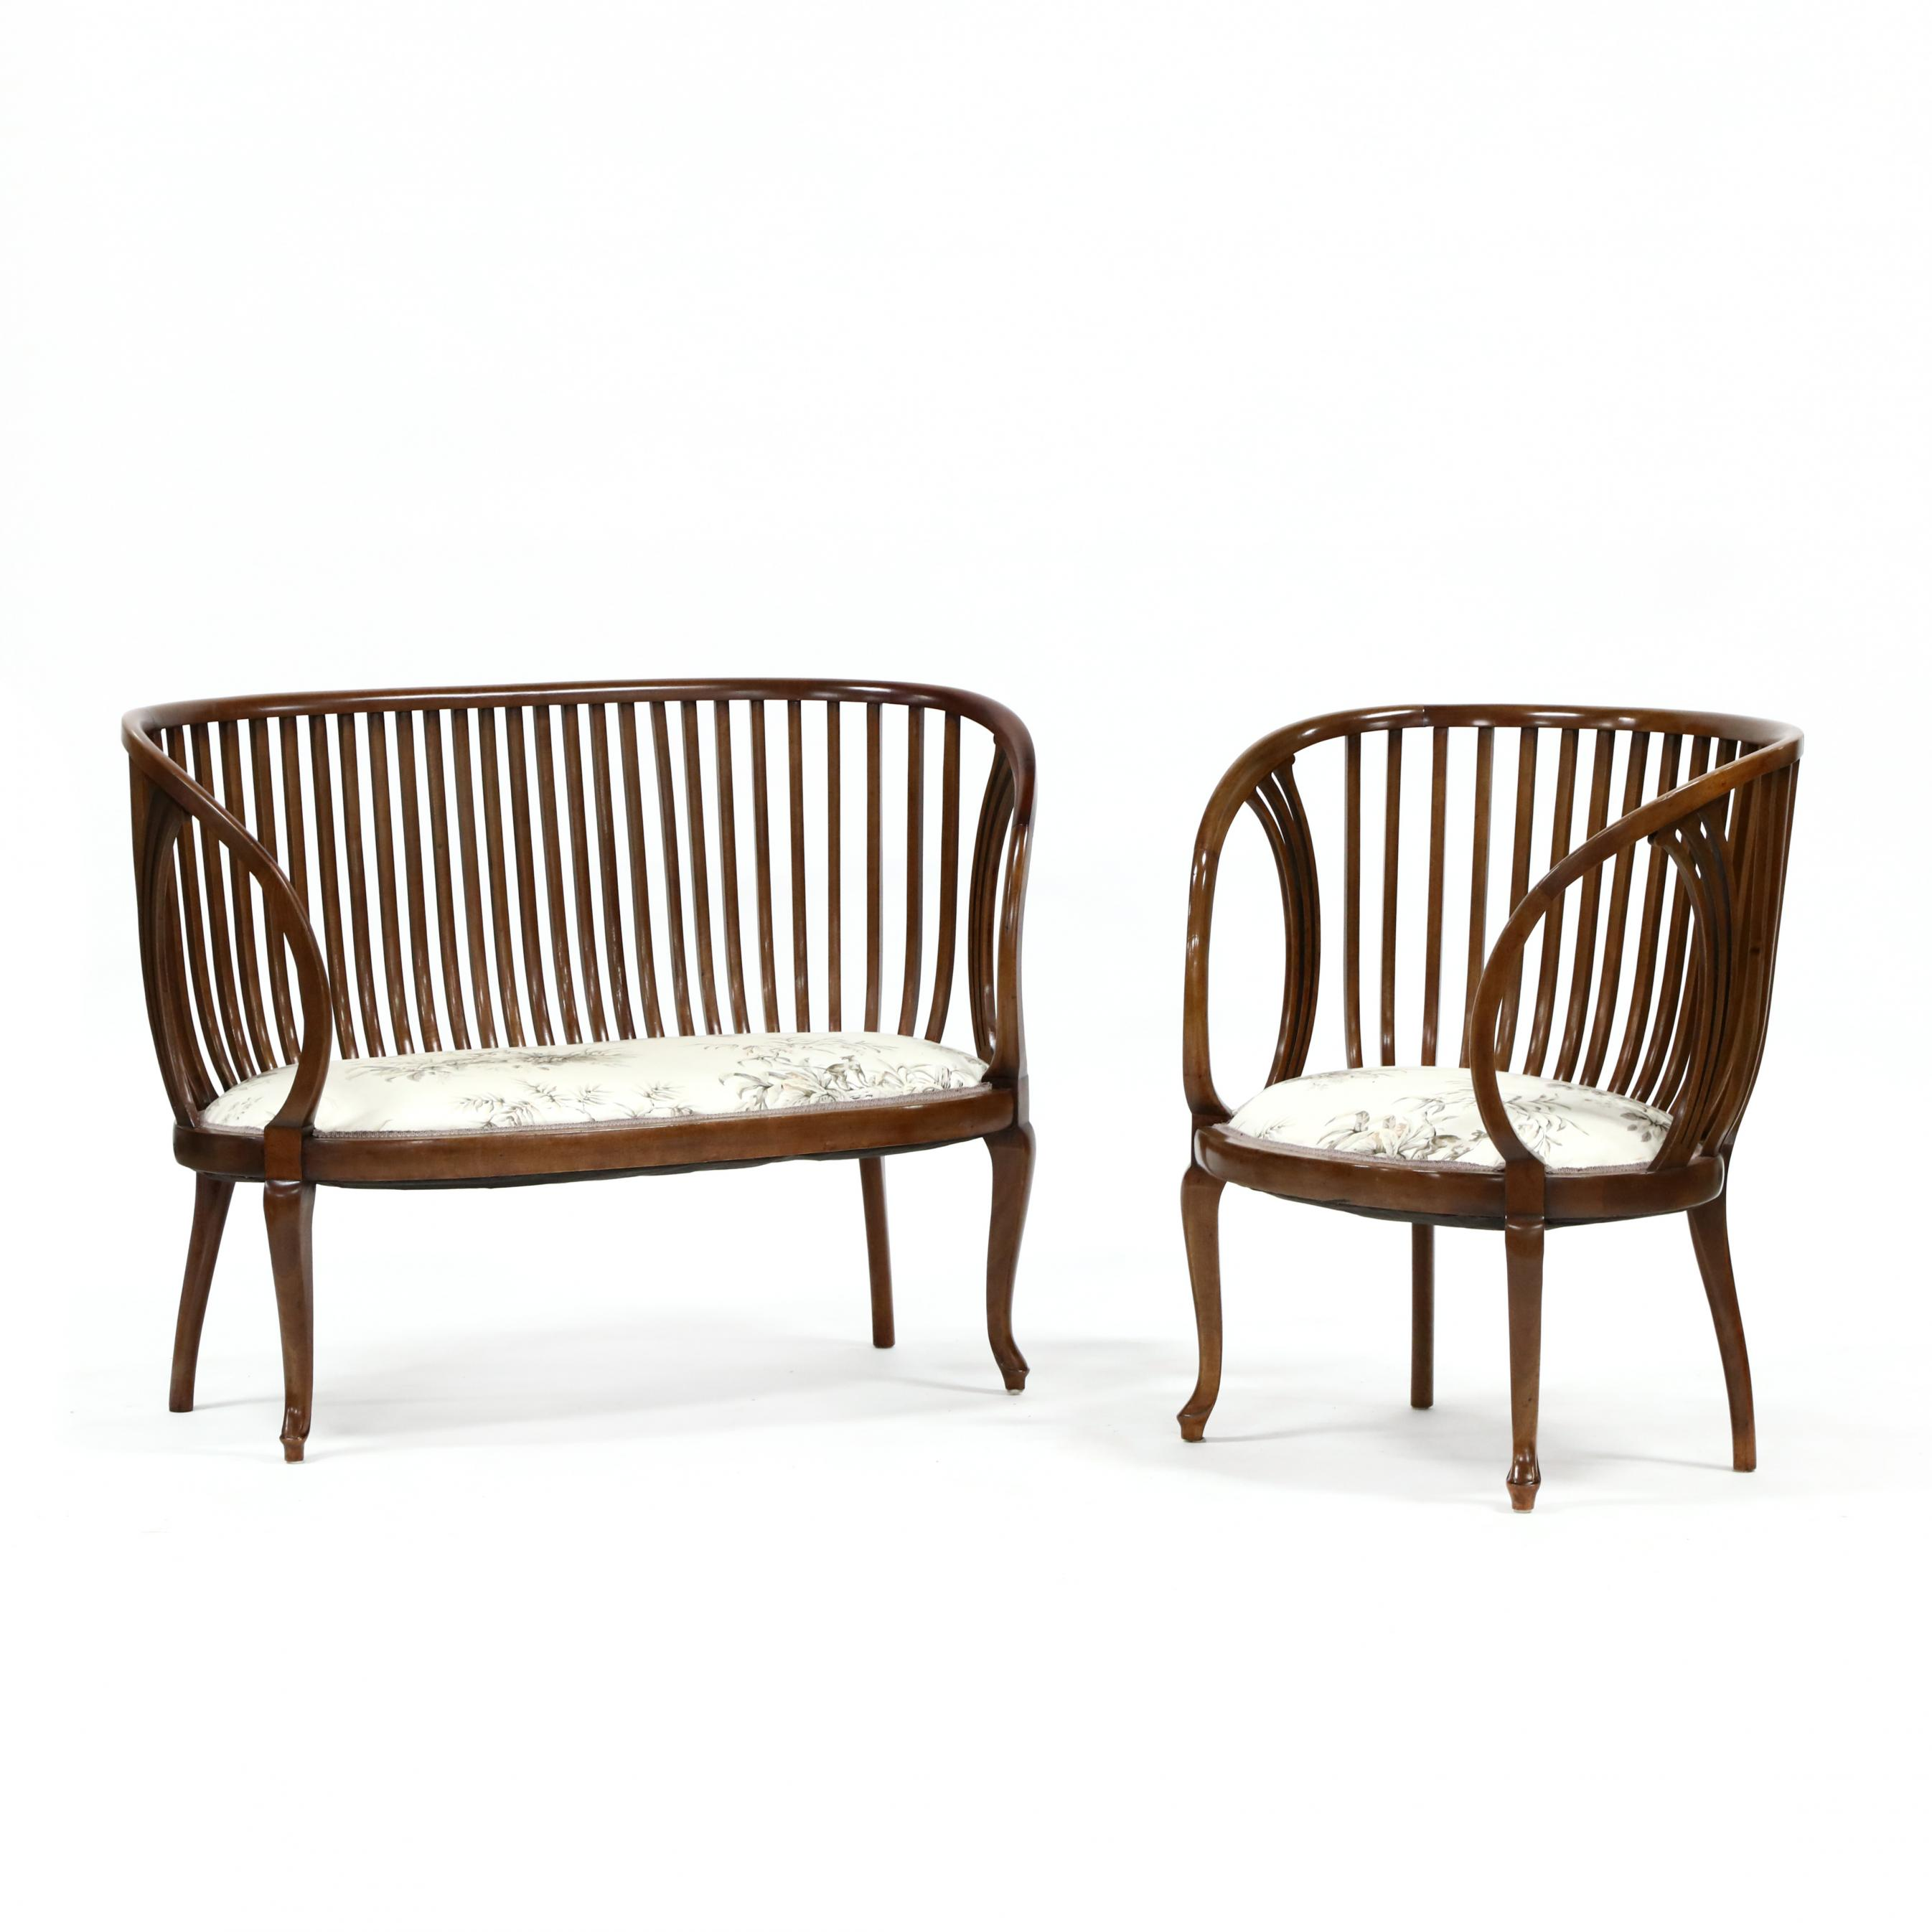 transitional-continental-bentwood-settee-and-armchair